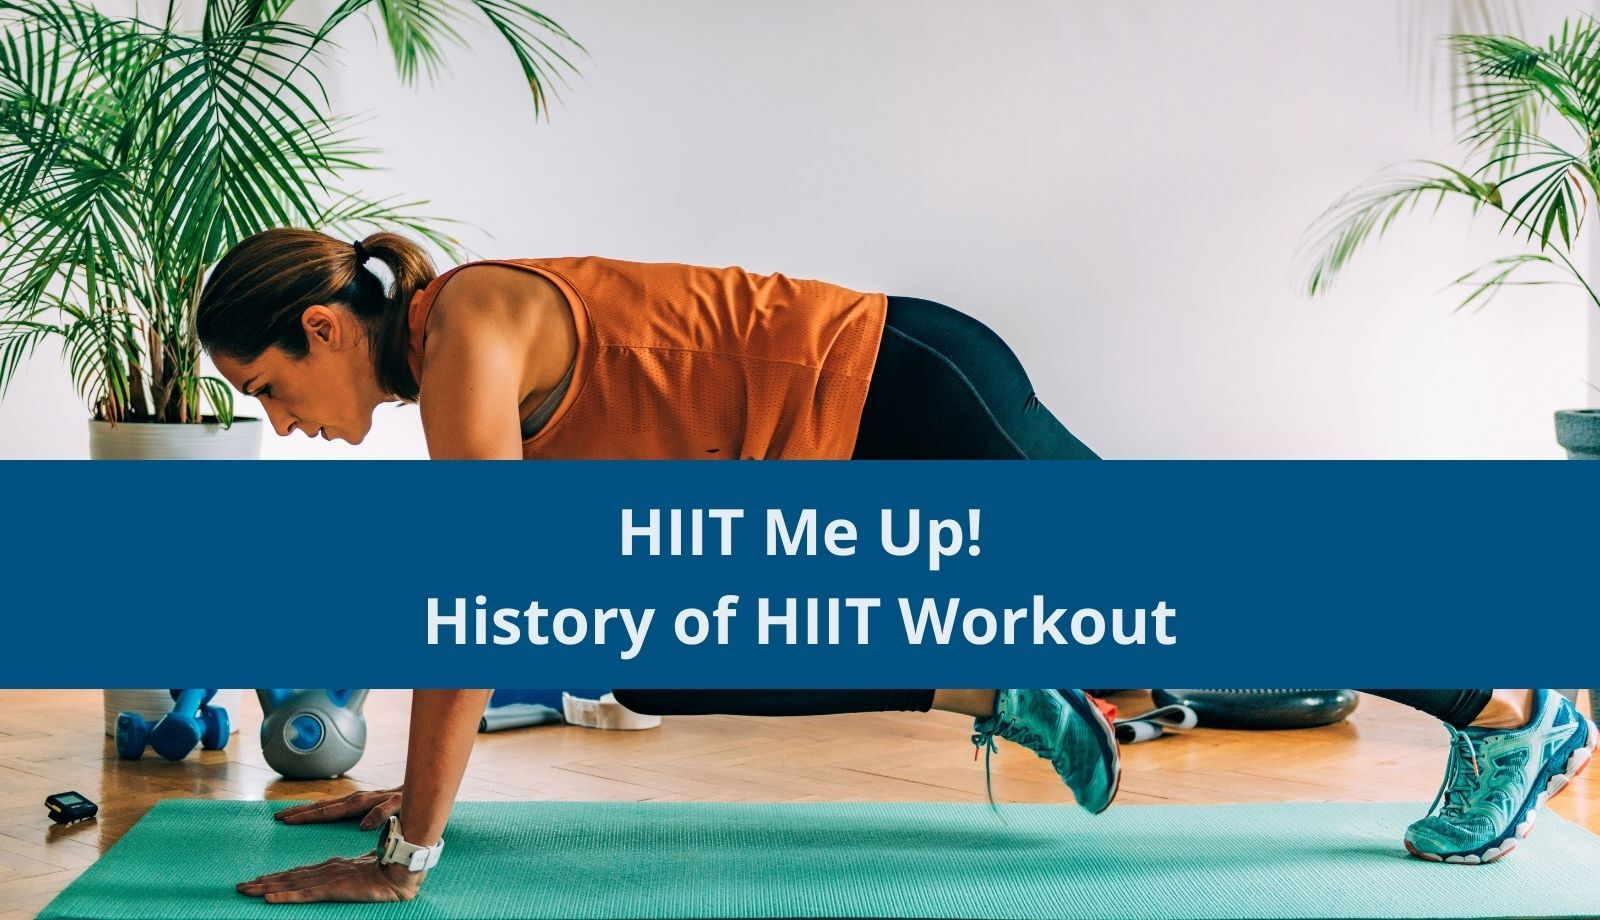 HIIT Me Up! History of HIIT Workout